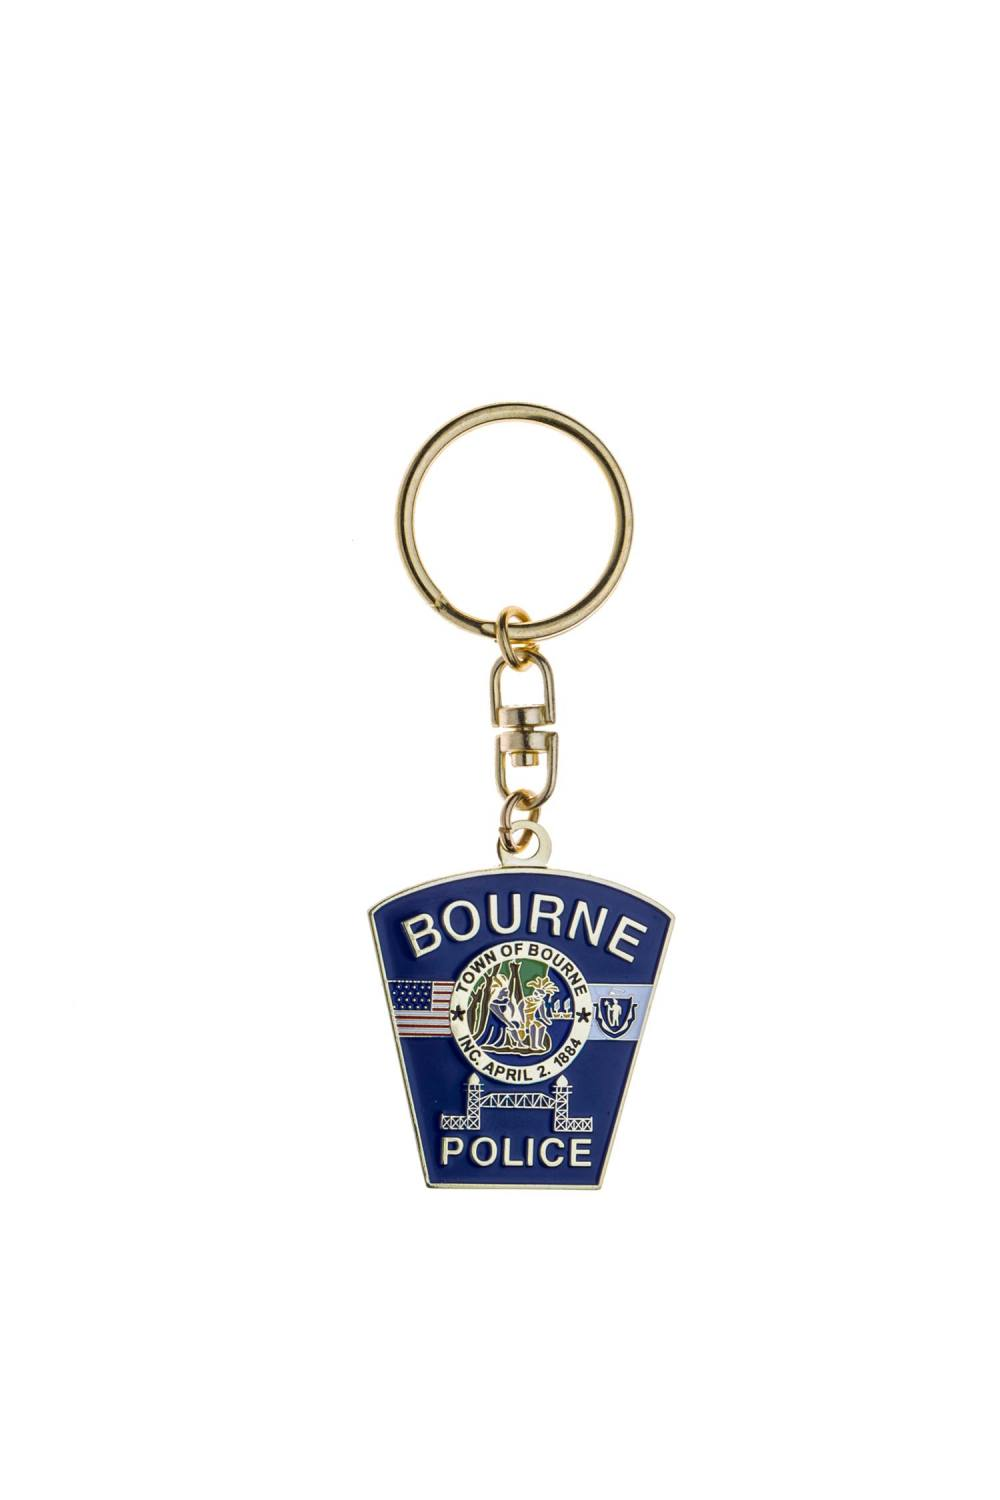 Metal police keychains